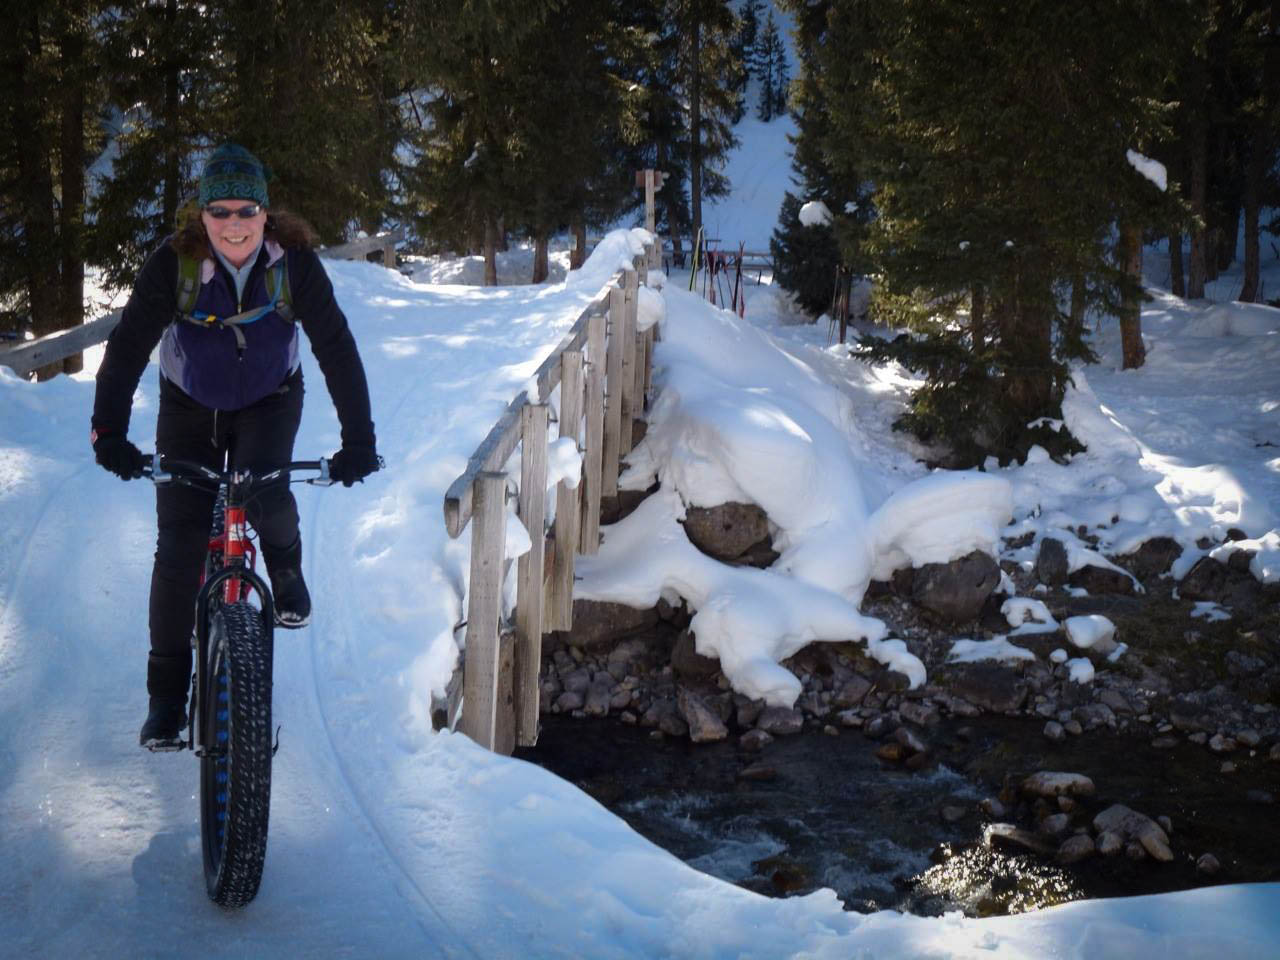 A rider enjoys groomed trails on a fat bike. Photo courtesy of Curt Gowdy SP.